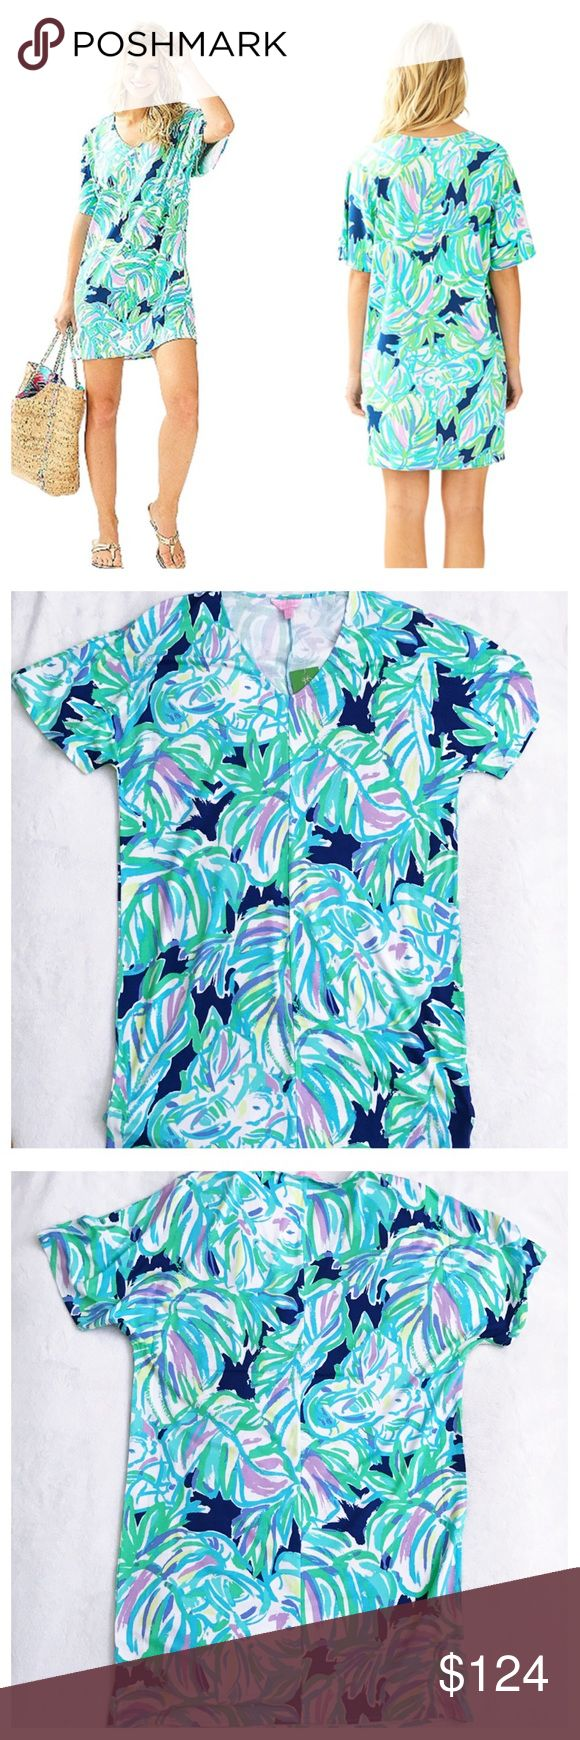 "Lilly Pulitzer Lindley Caftan dress Uptown trunk NWT no flaws. Runs large-would also fit a medium, see measurements for best fit Bust 21"" Length 36"" Waist 21"" First set of images are stock all others are of actual shorts for sale Please review all photos thoroughly  Feel free to ask questions  🚫trades 🚫modeling requests please ☂️ Lilly Pulitzer Dresses Mini"